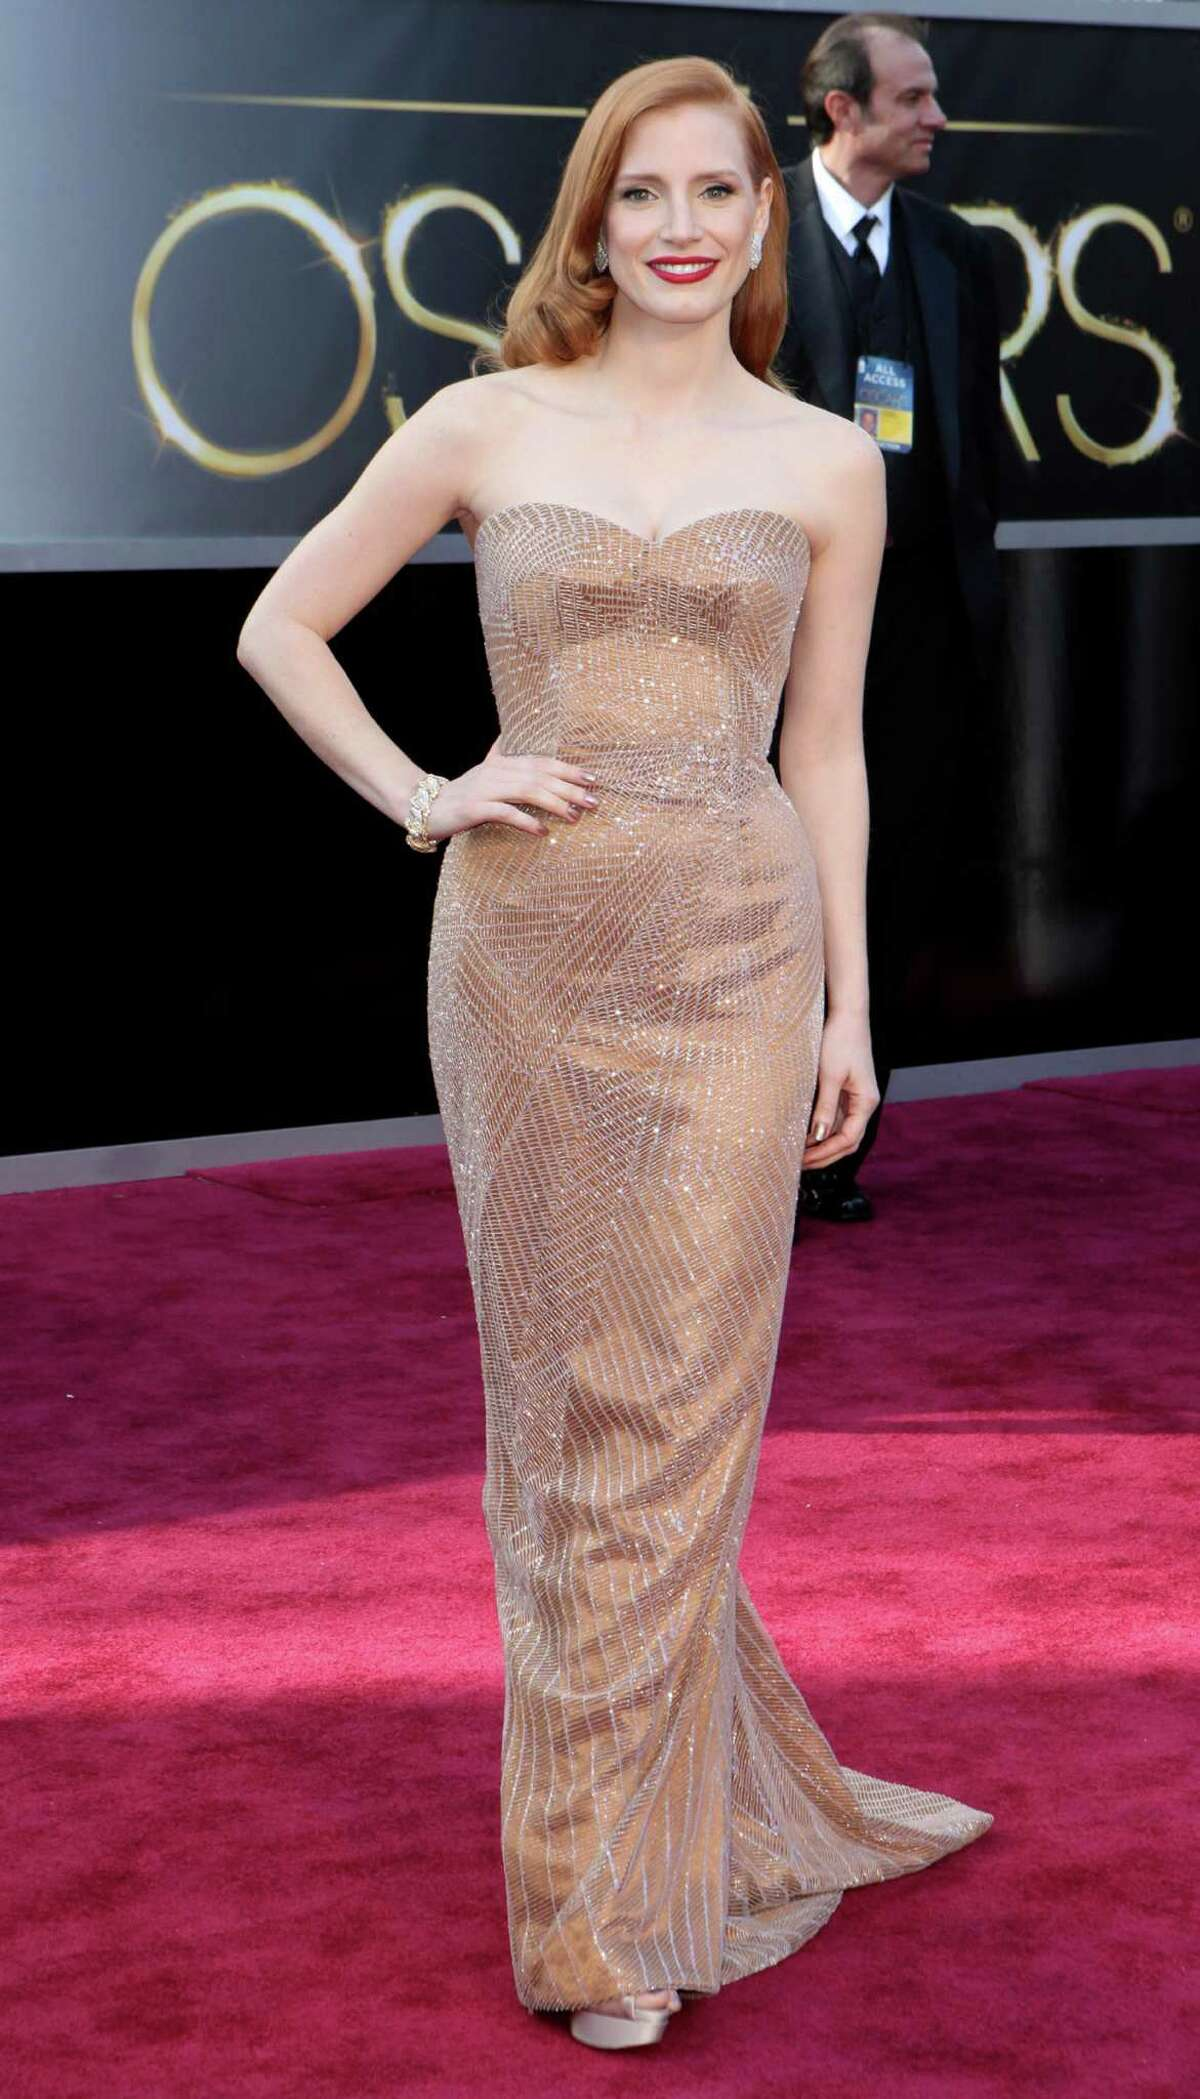 Best: Jessica Chastain in an unusual color, but bringing the Oscar-level sparkle.